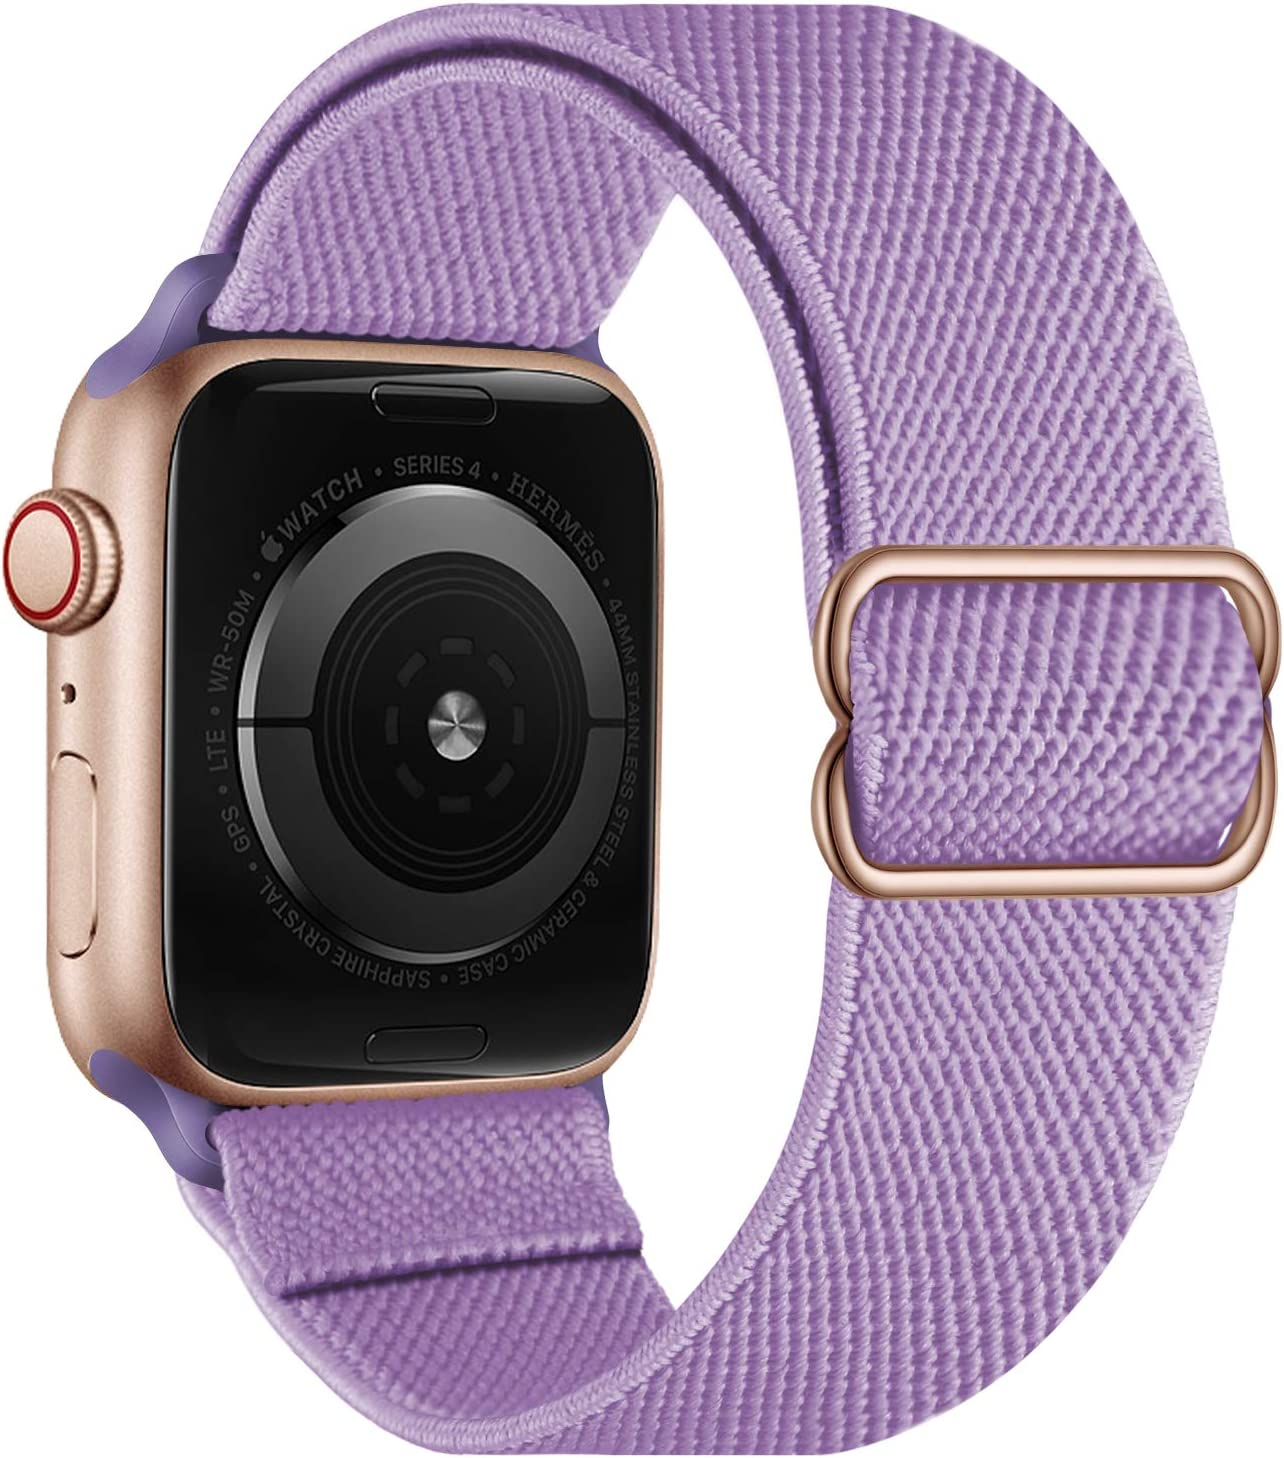 OXWALLEN Stretchy Nylon Solo Loop Compatible with Apple Watch Bands 38mm 40mm, Adjustable Elastic Braided Stretches Women Men Strap for iWatch SE Series 6/5/4/3/2/1,Light Purple